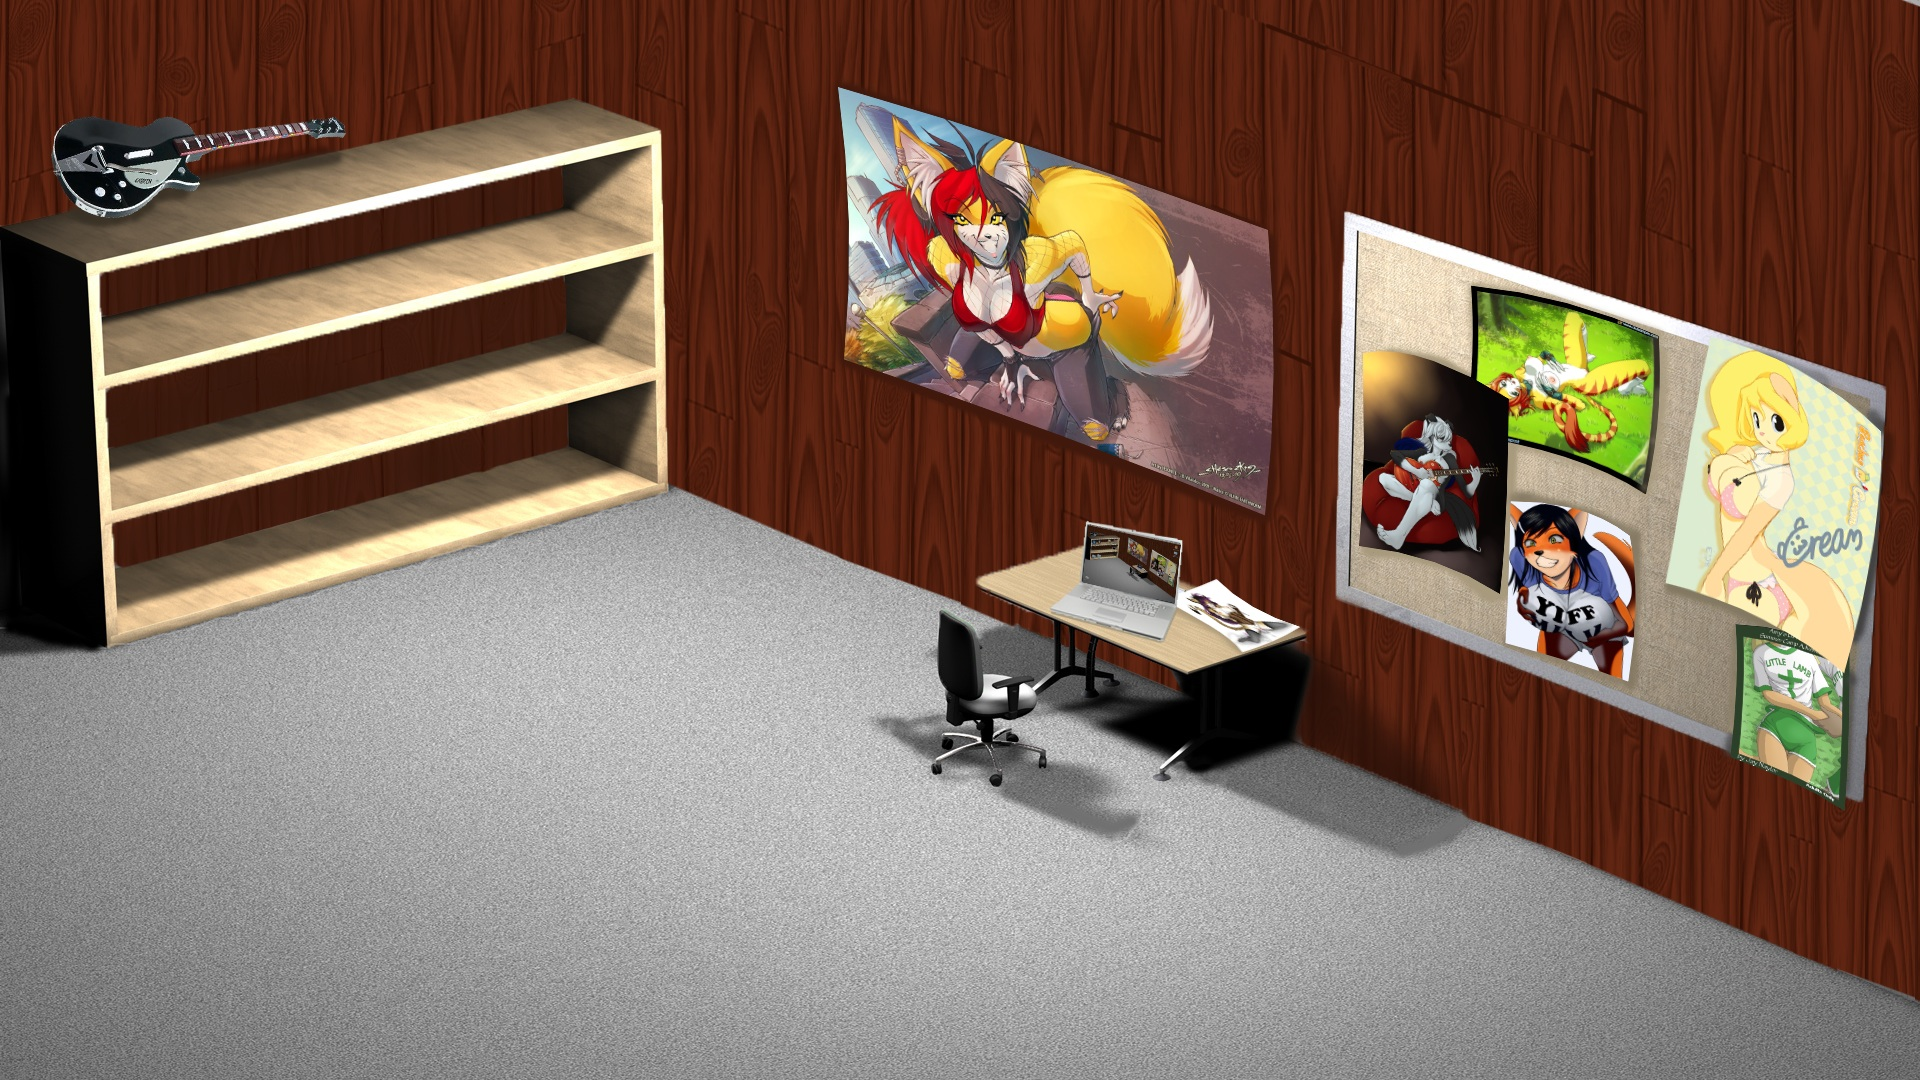 Pics Photos Pictures Office Space Wallpaper Background 1920x1080